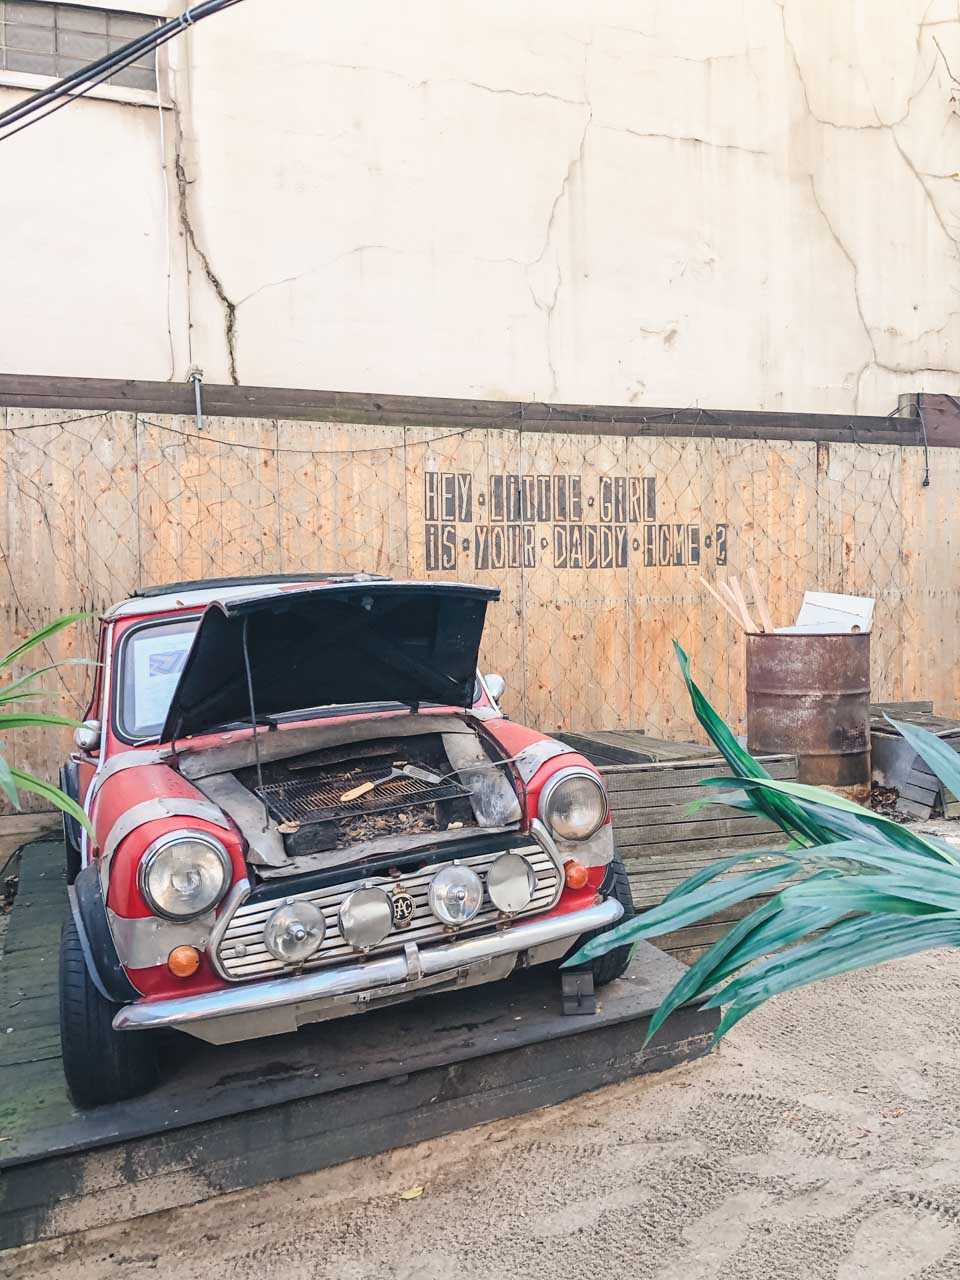 A vintage car transformed into a barbecue